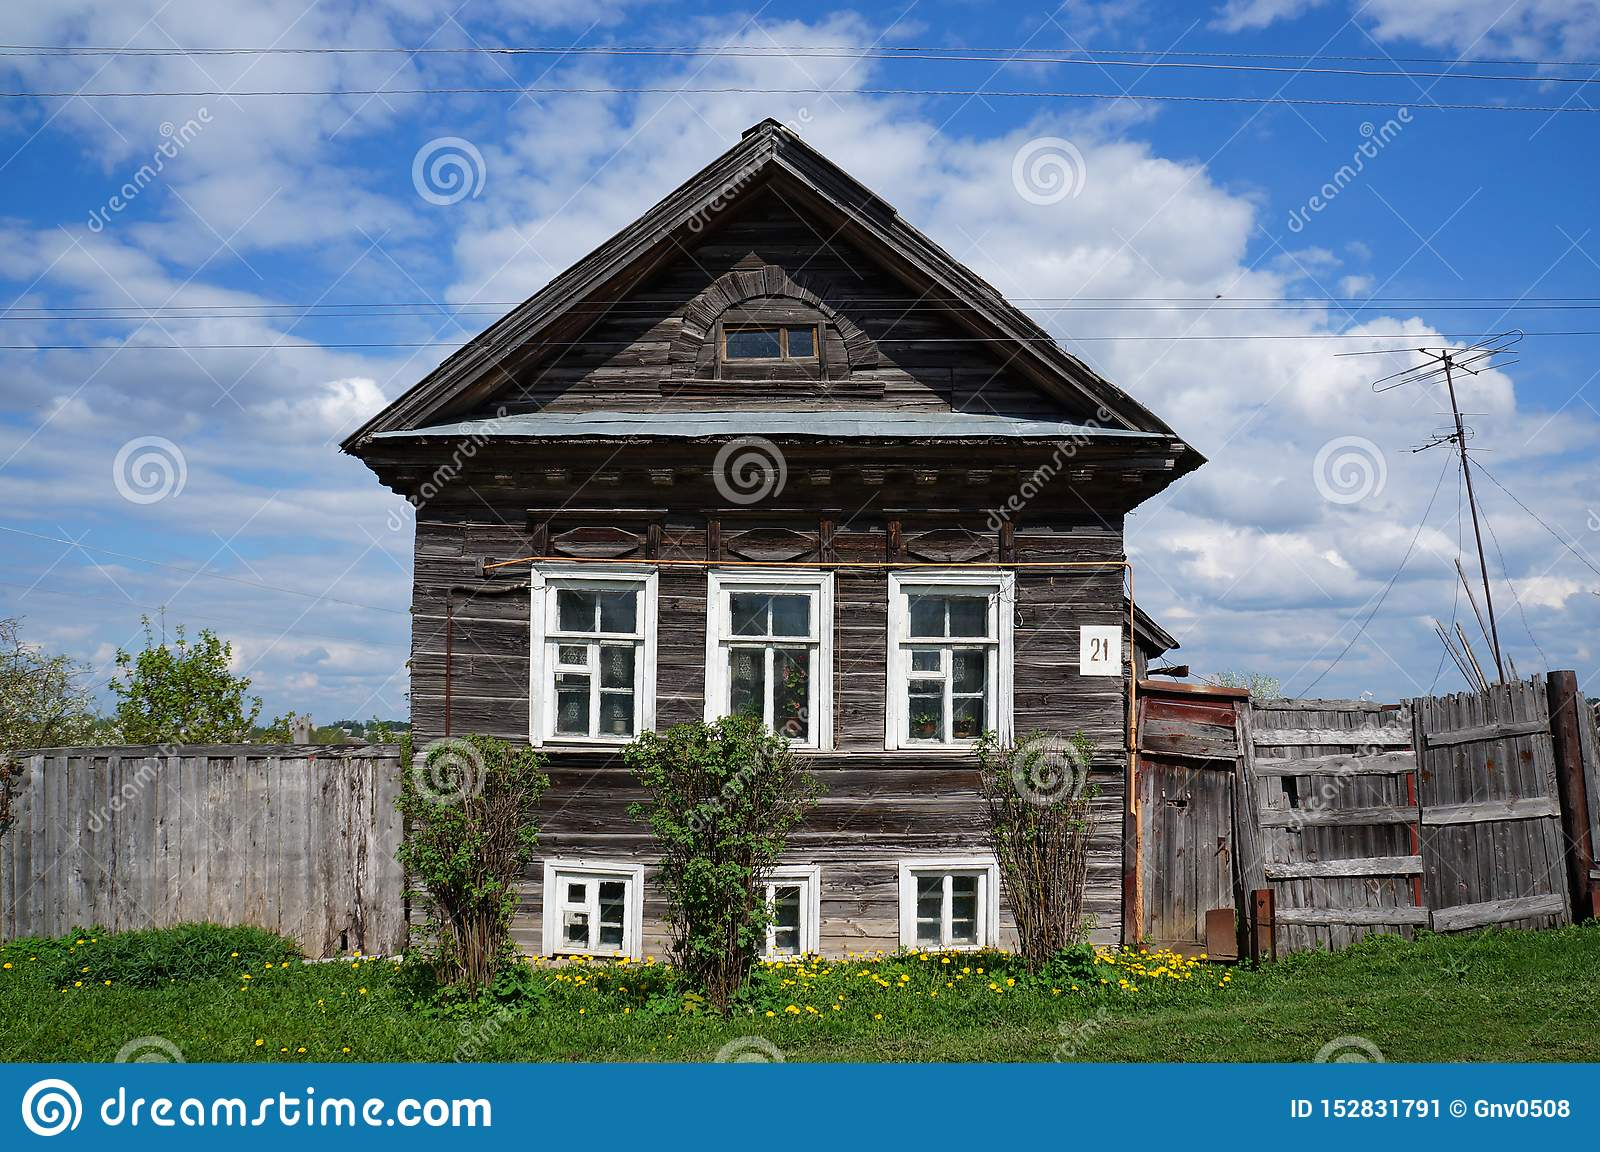 Old wooden house with traditional decorative elements on the facade